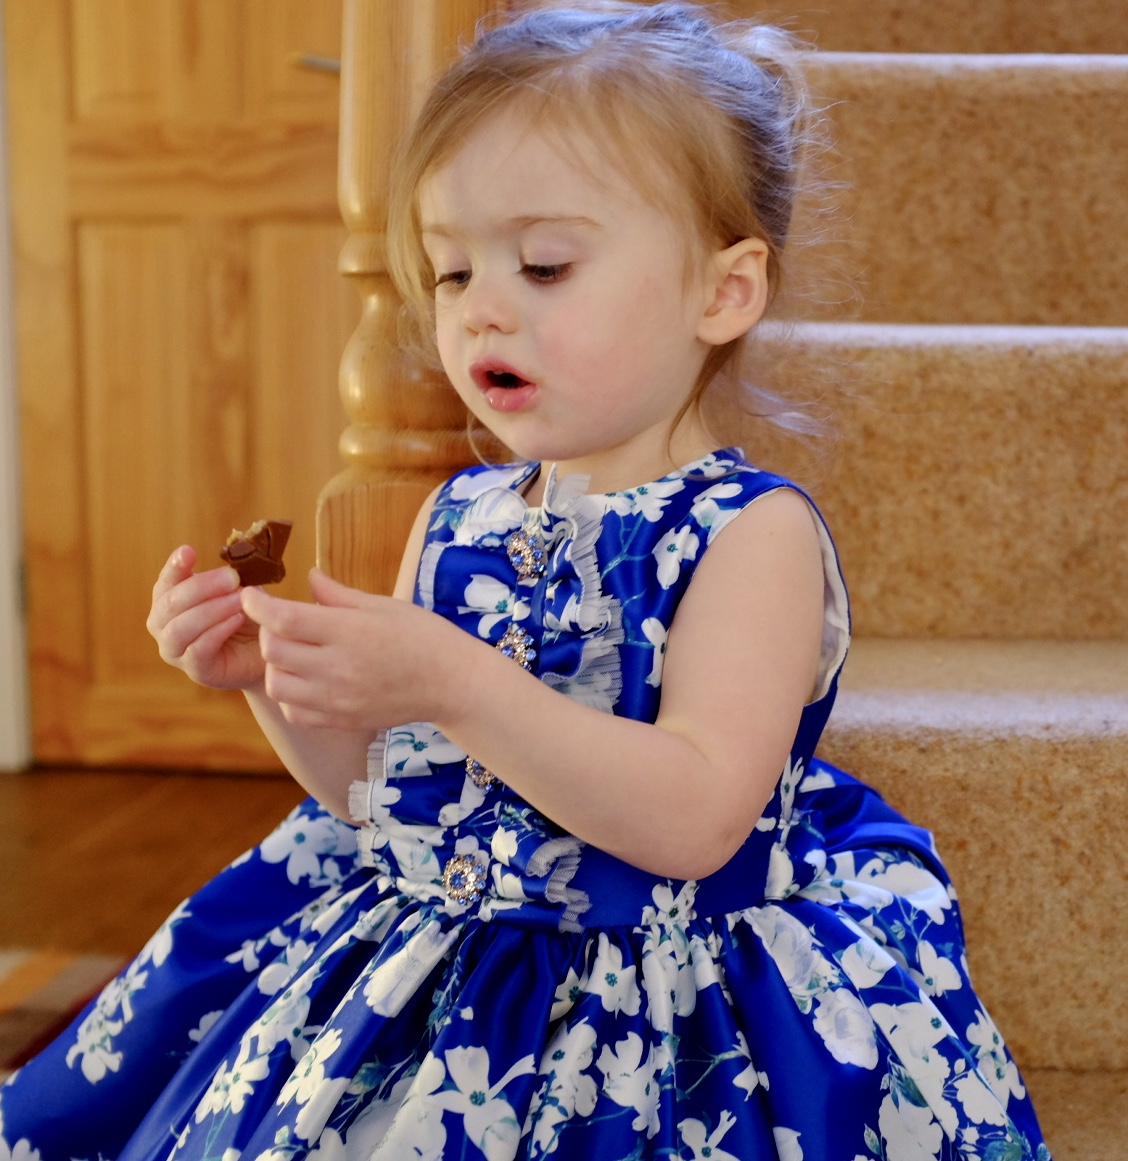 2 year old eating in David Charles spring/summer collection dress